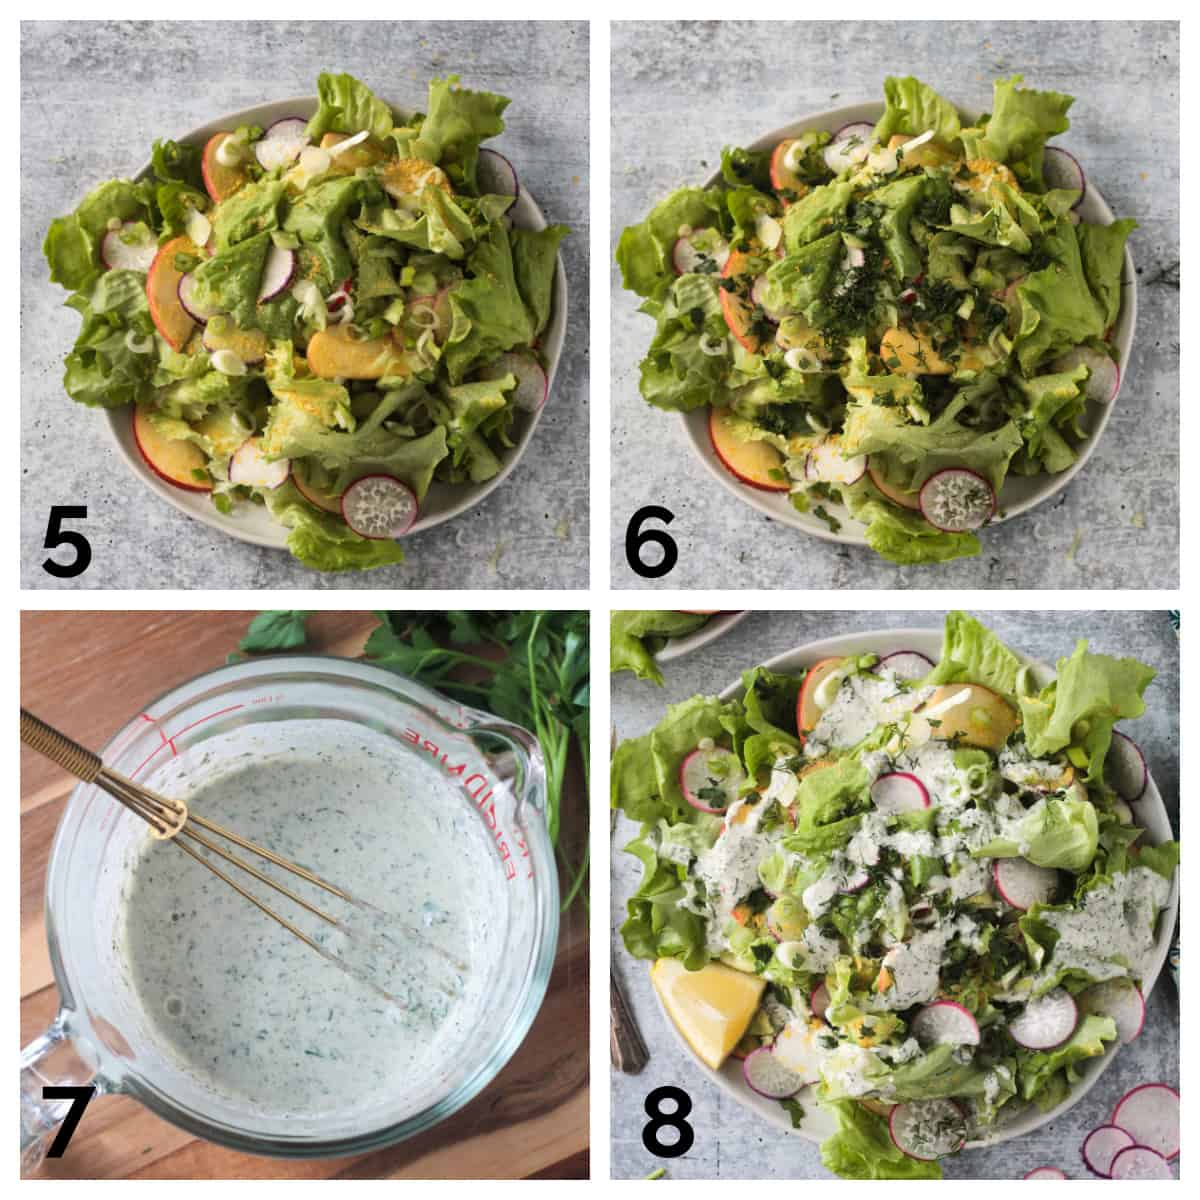 4 photo collage of assembling the green onions, fresh herbs, vegan ranch, and finished salad.